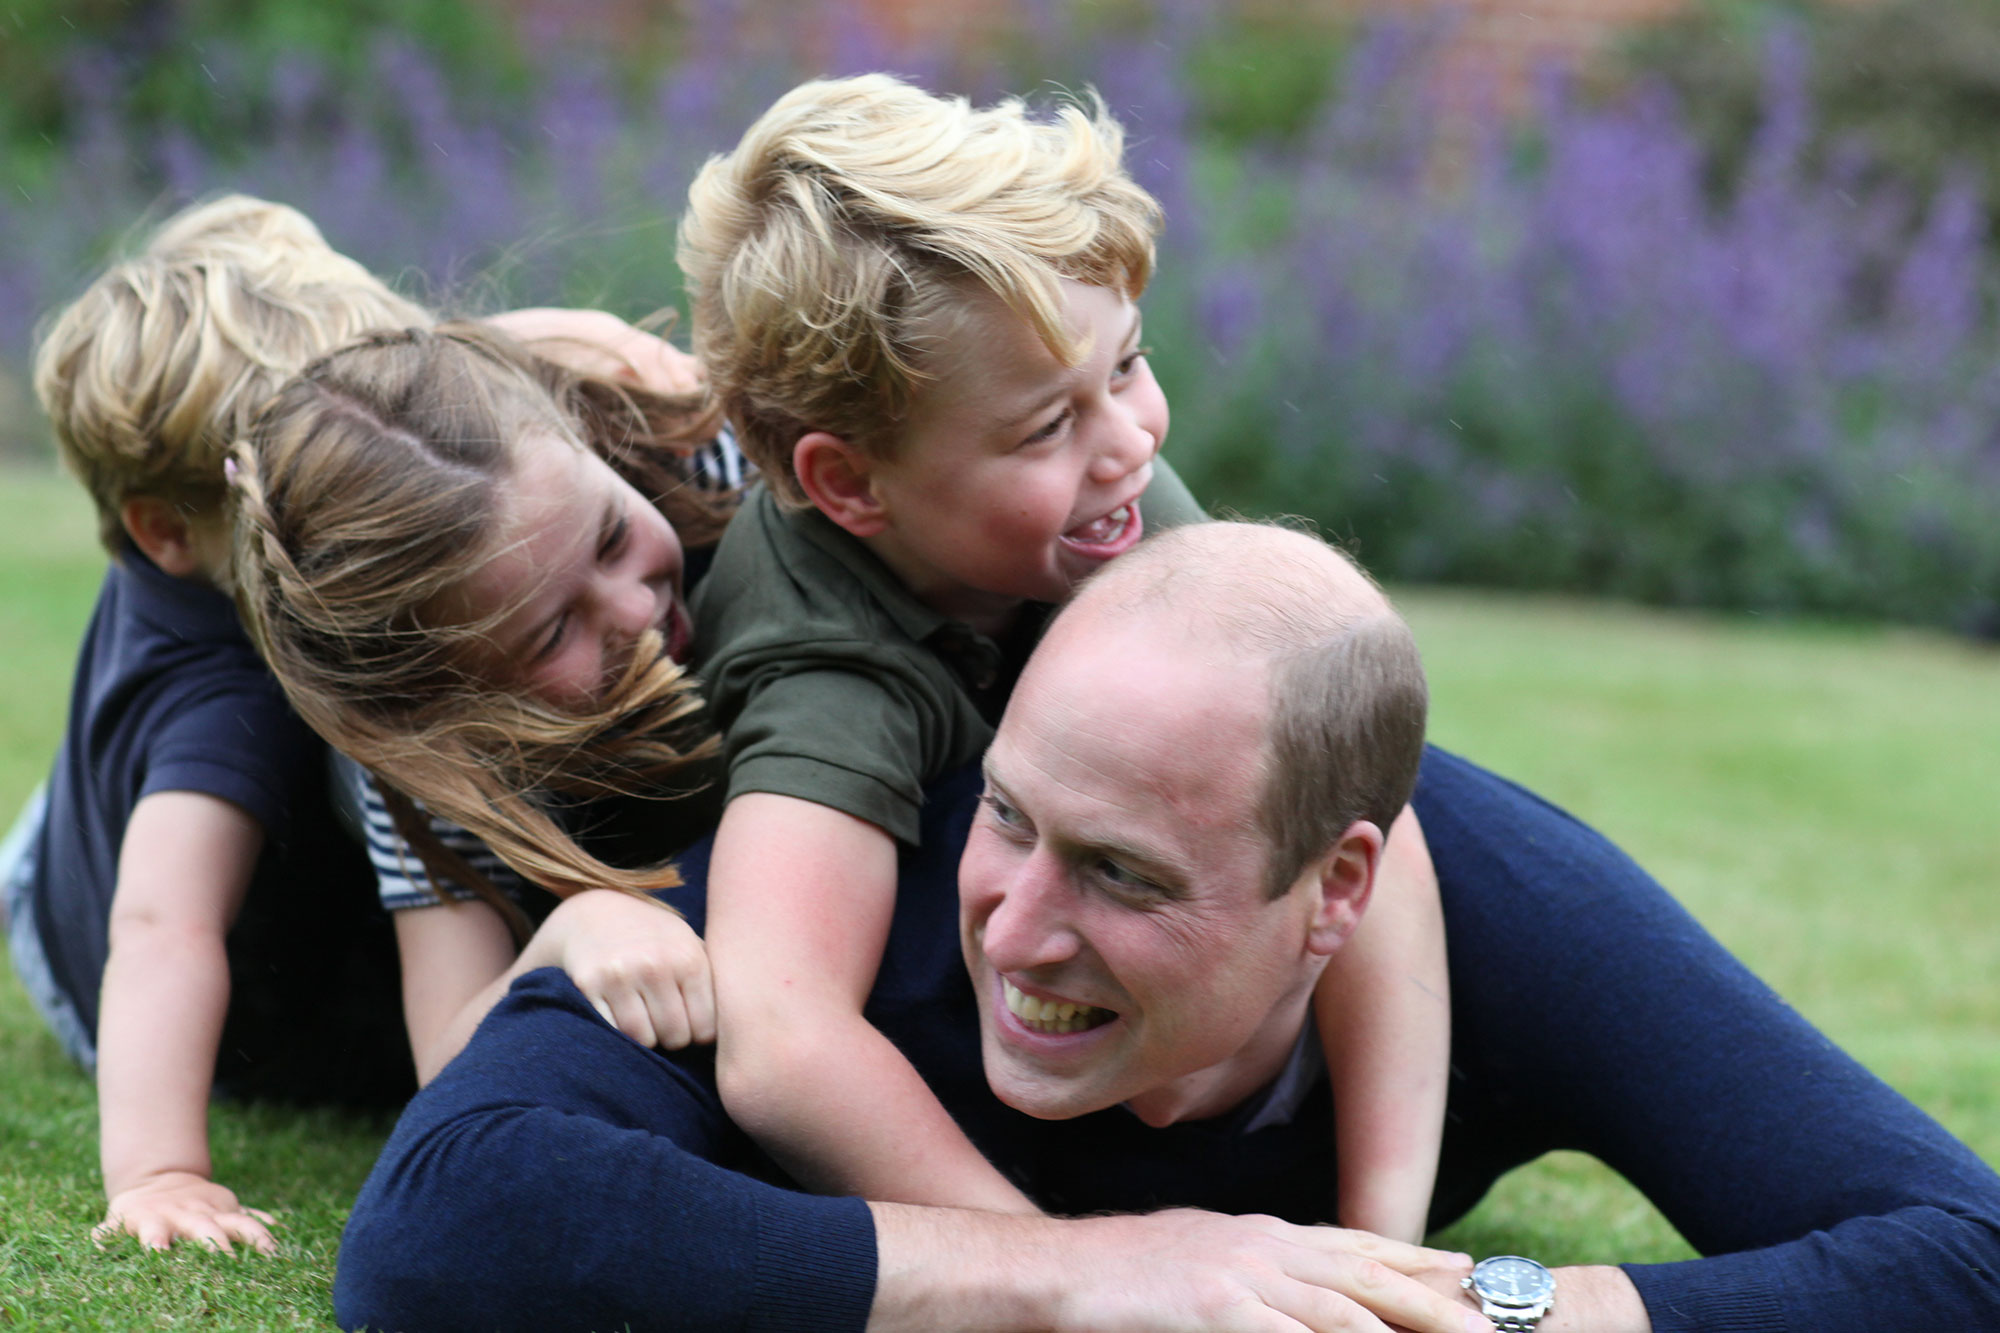 Prince William and kids laying on grass laughing